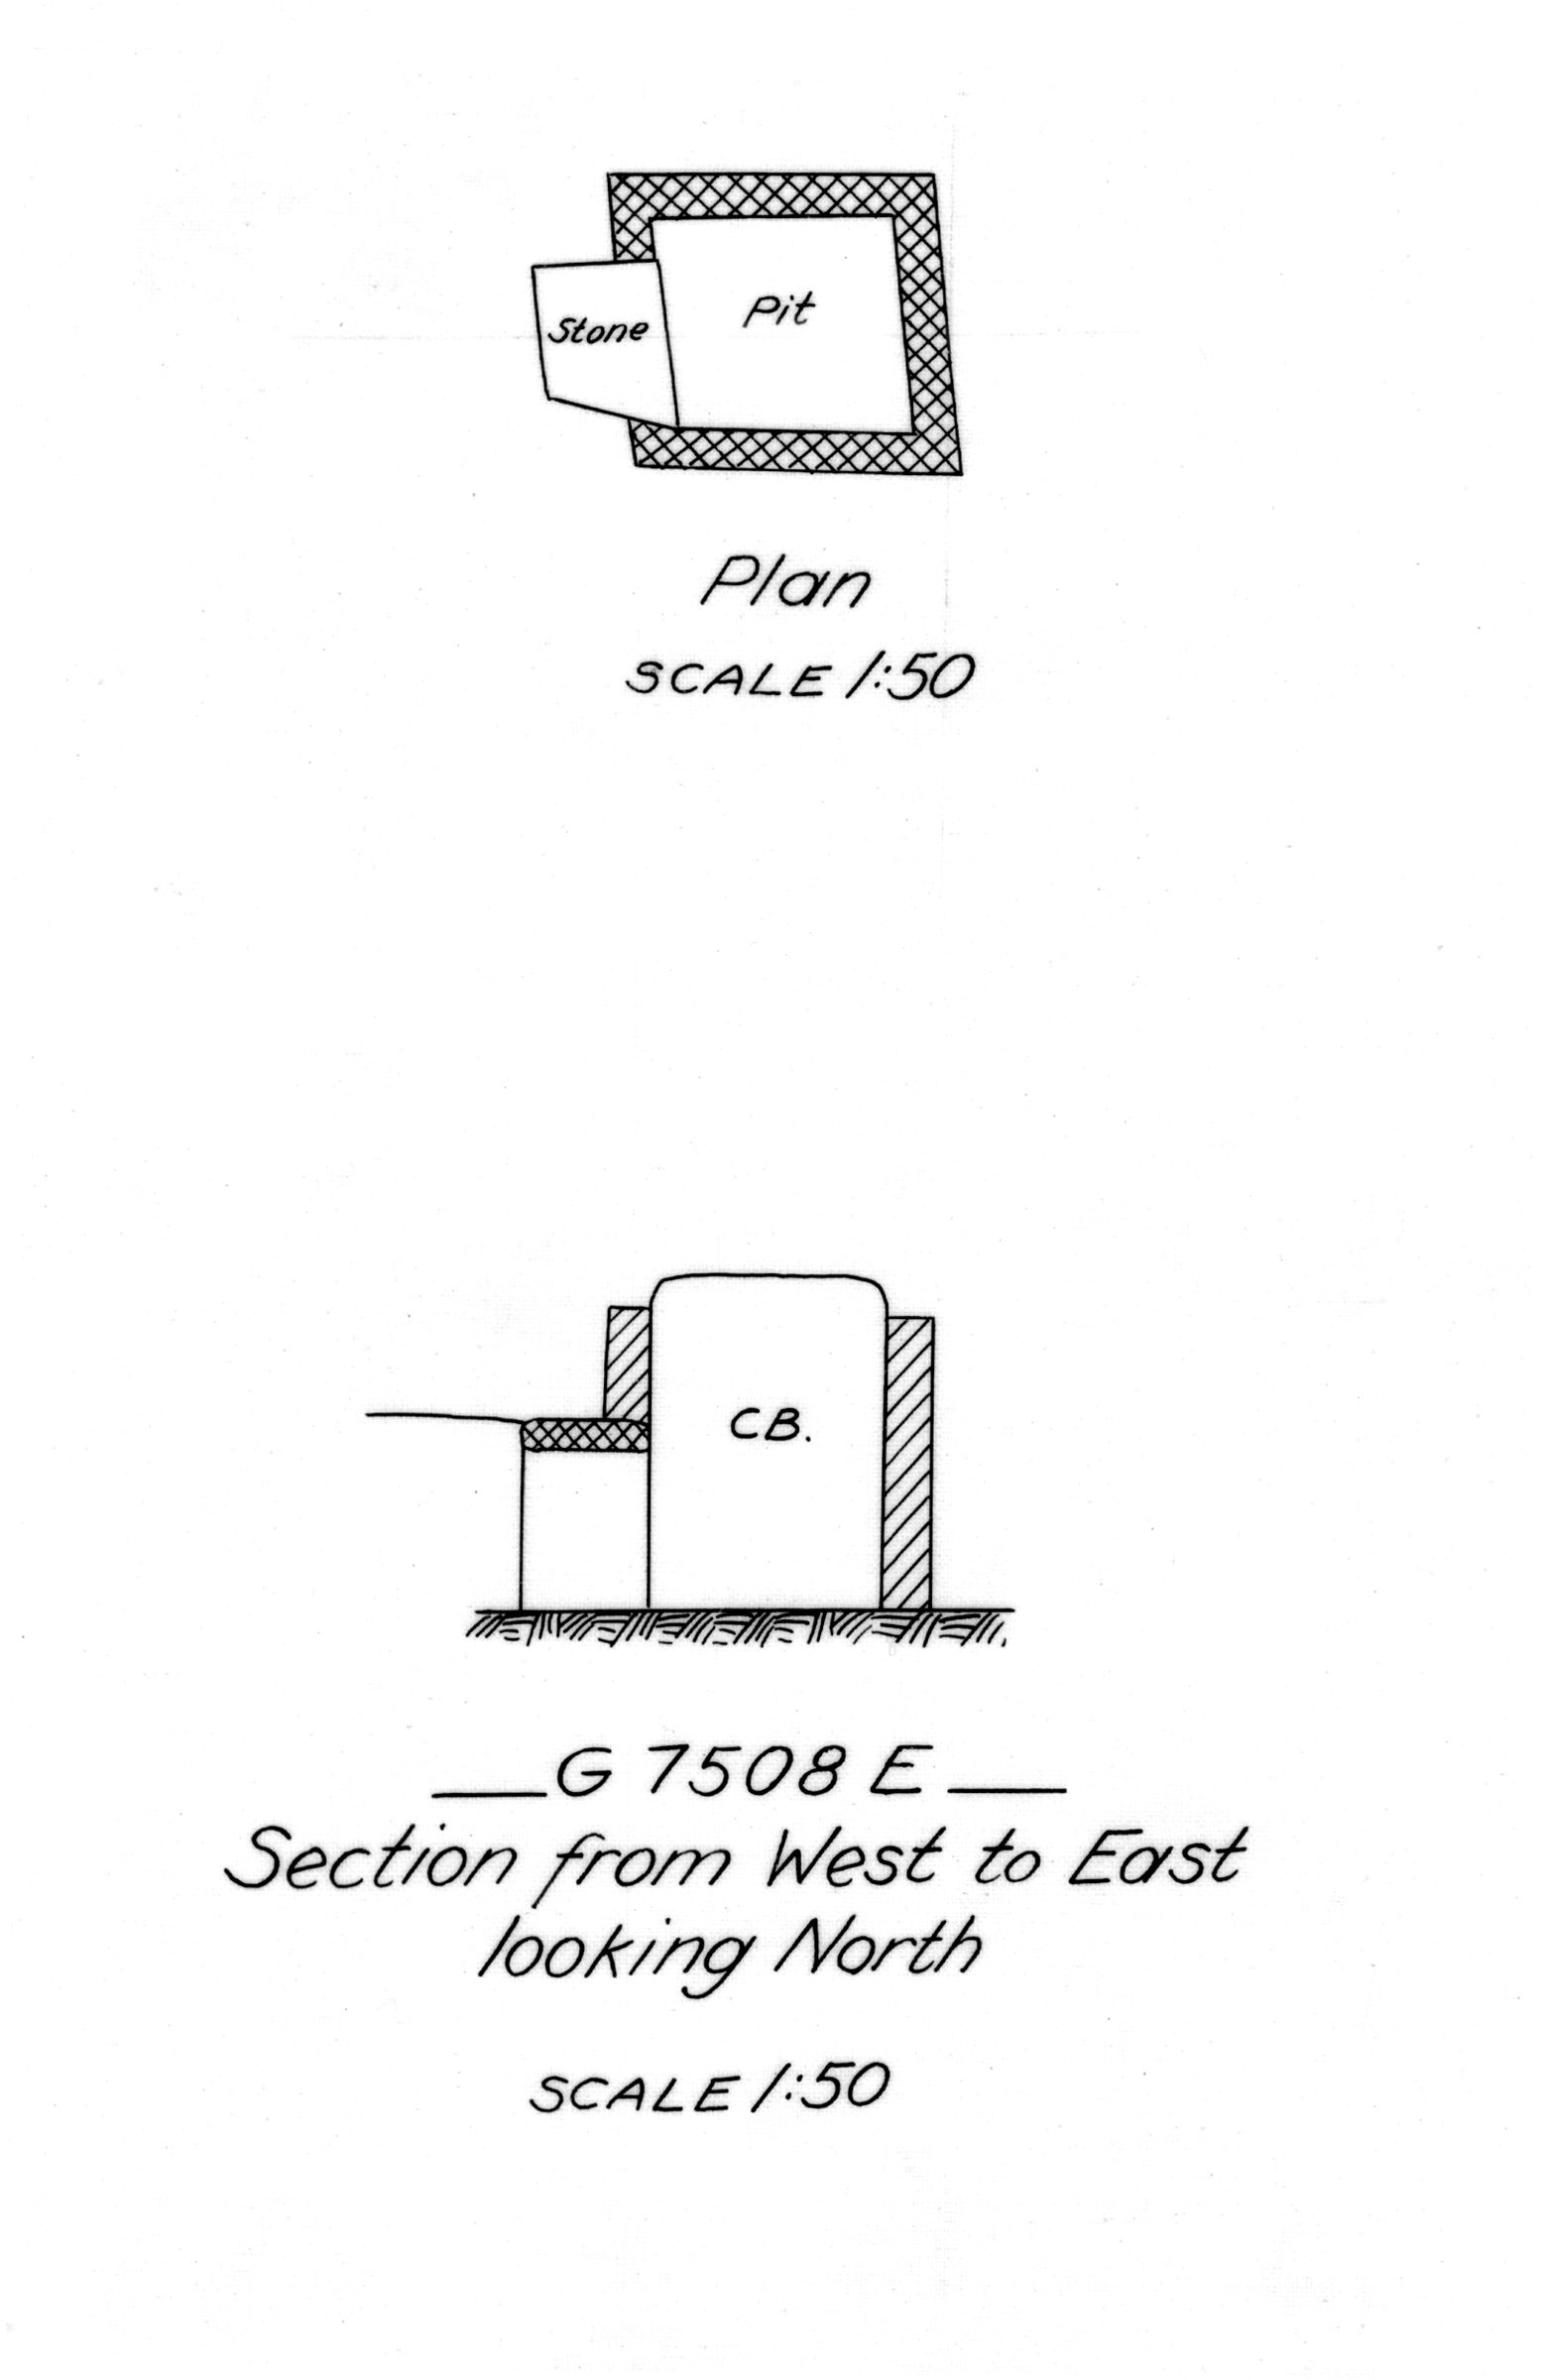 Maps and plans: G 7508, Shaft E